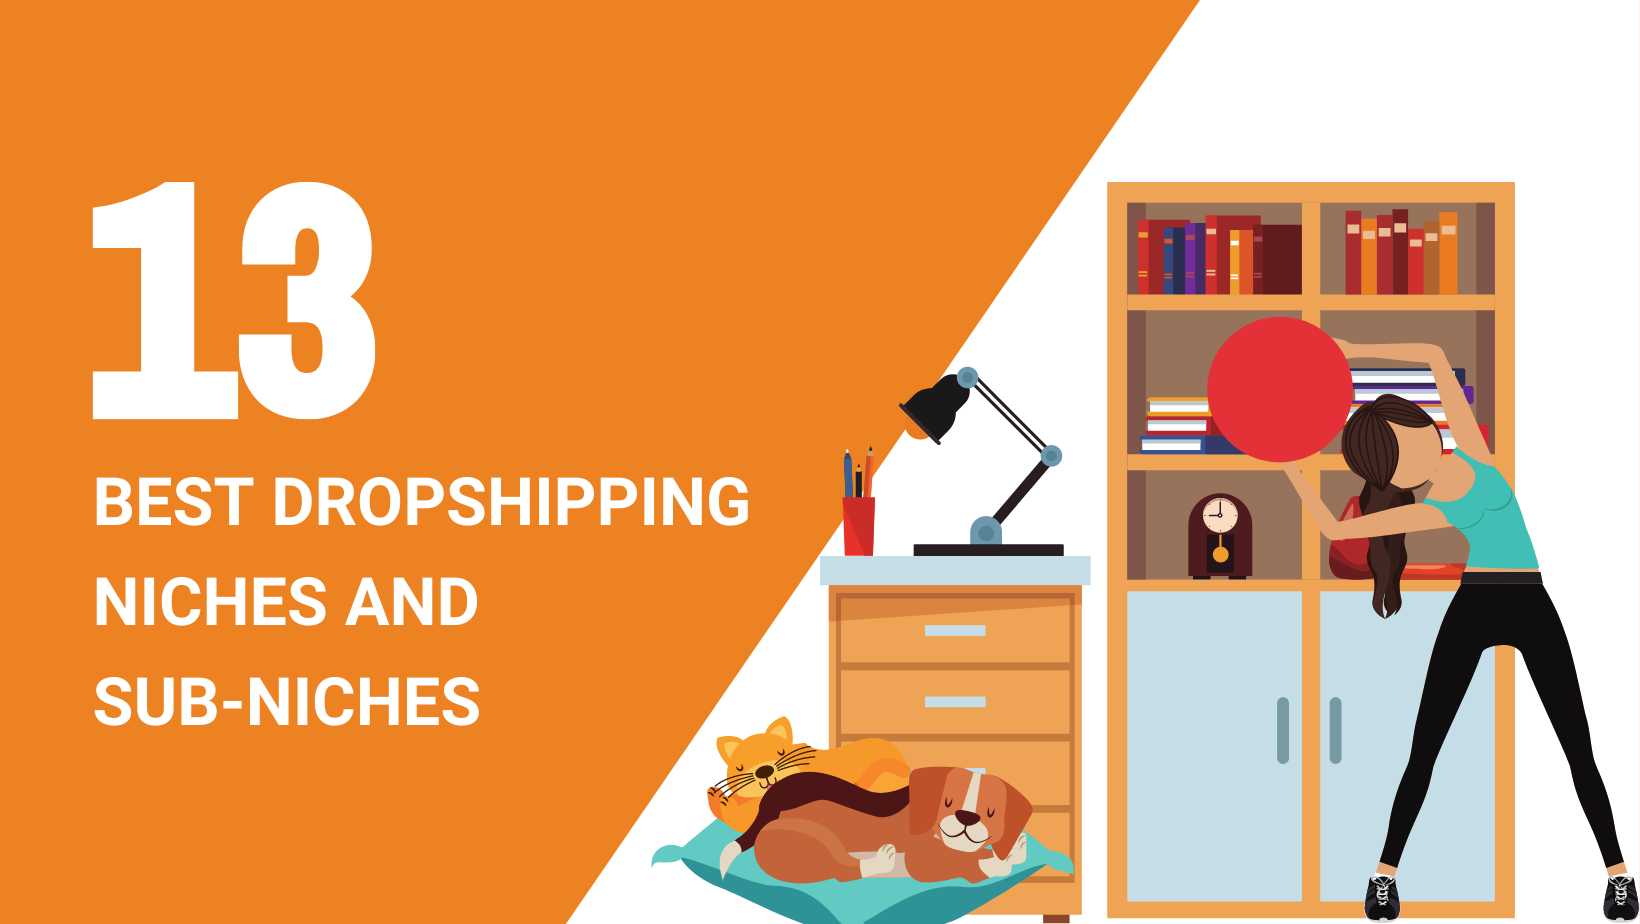 13 BEST DROPSHIPPING NICHES AND SUB NICHES